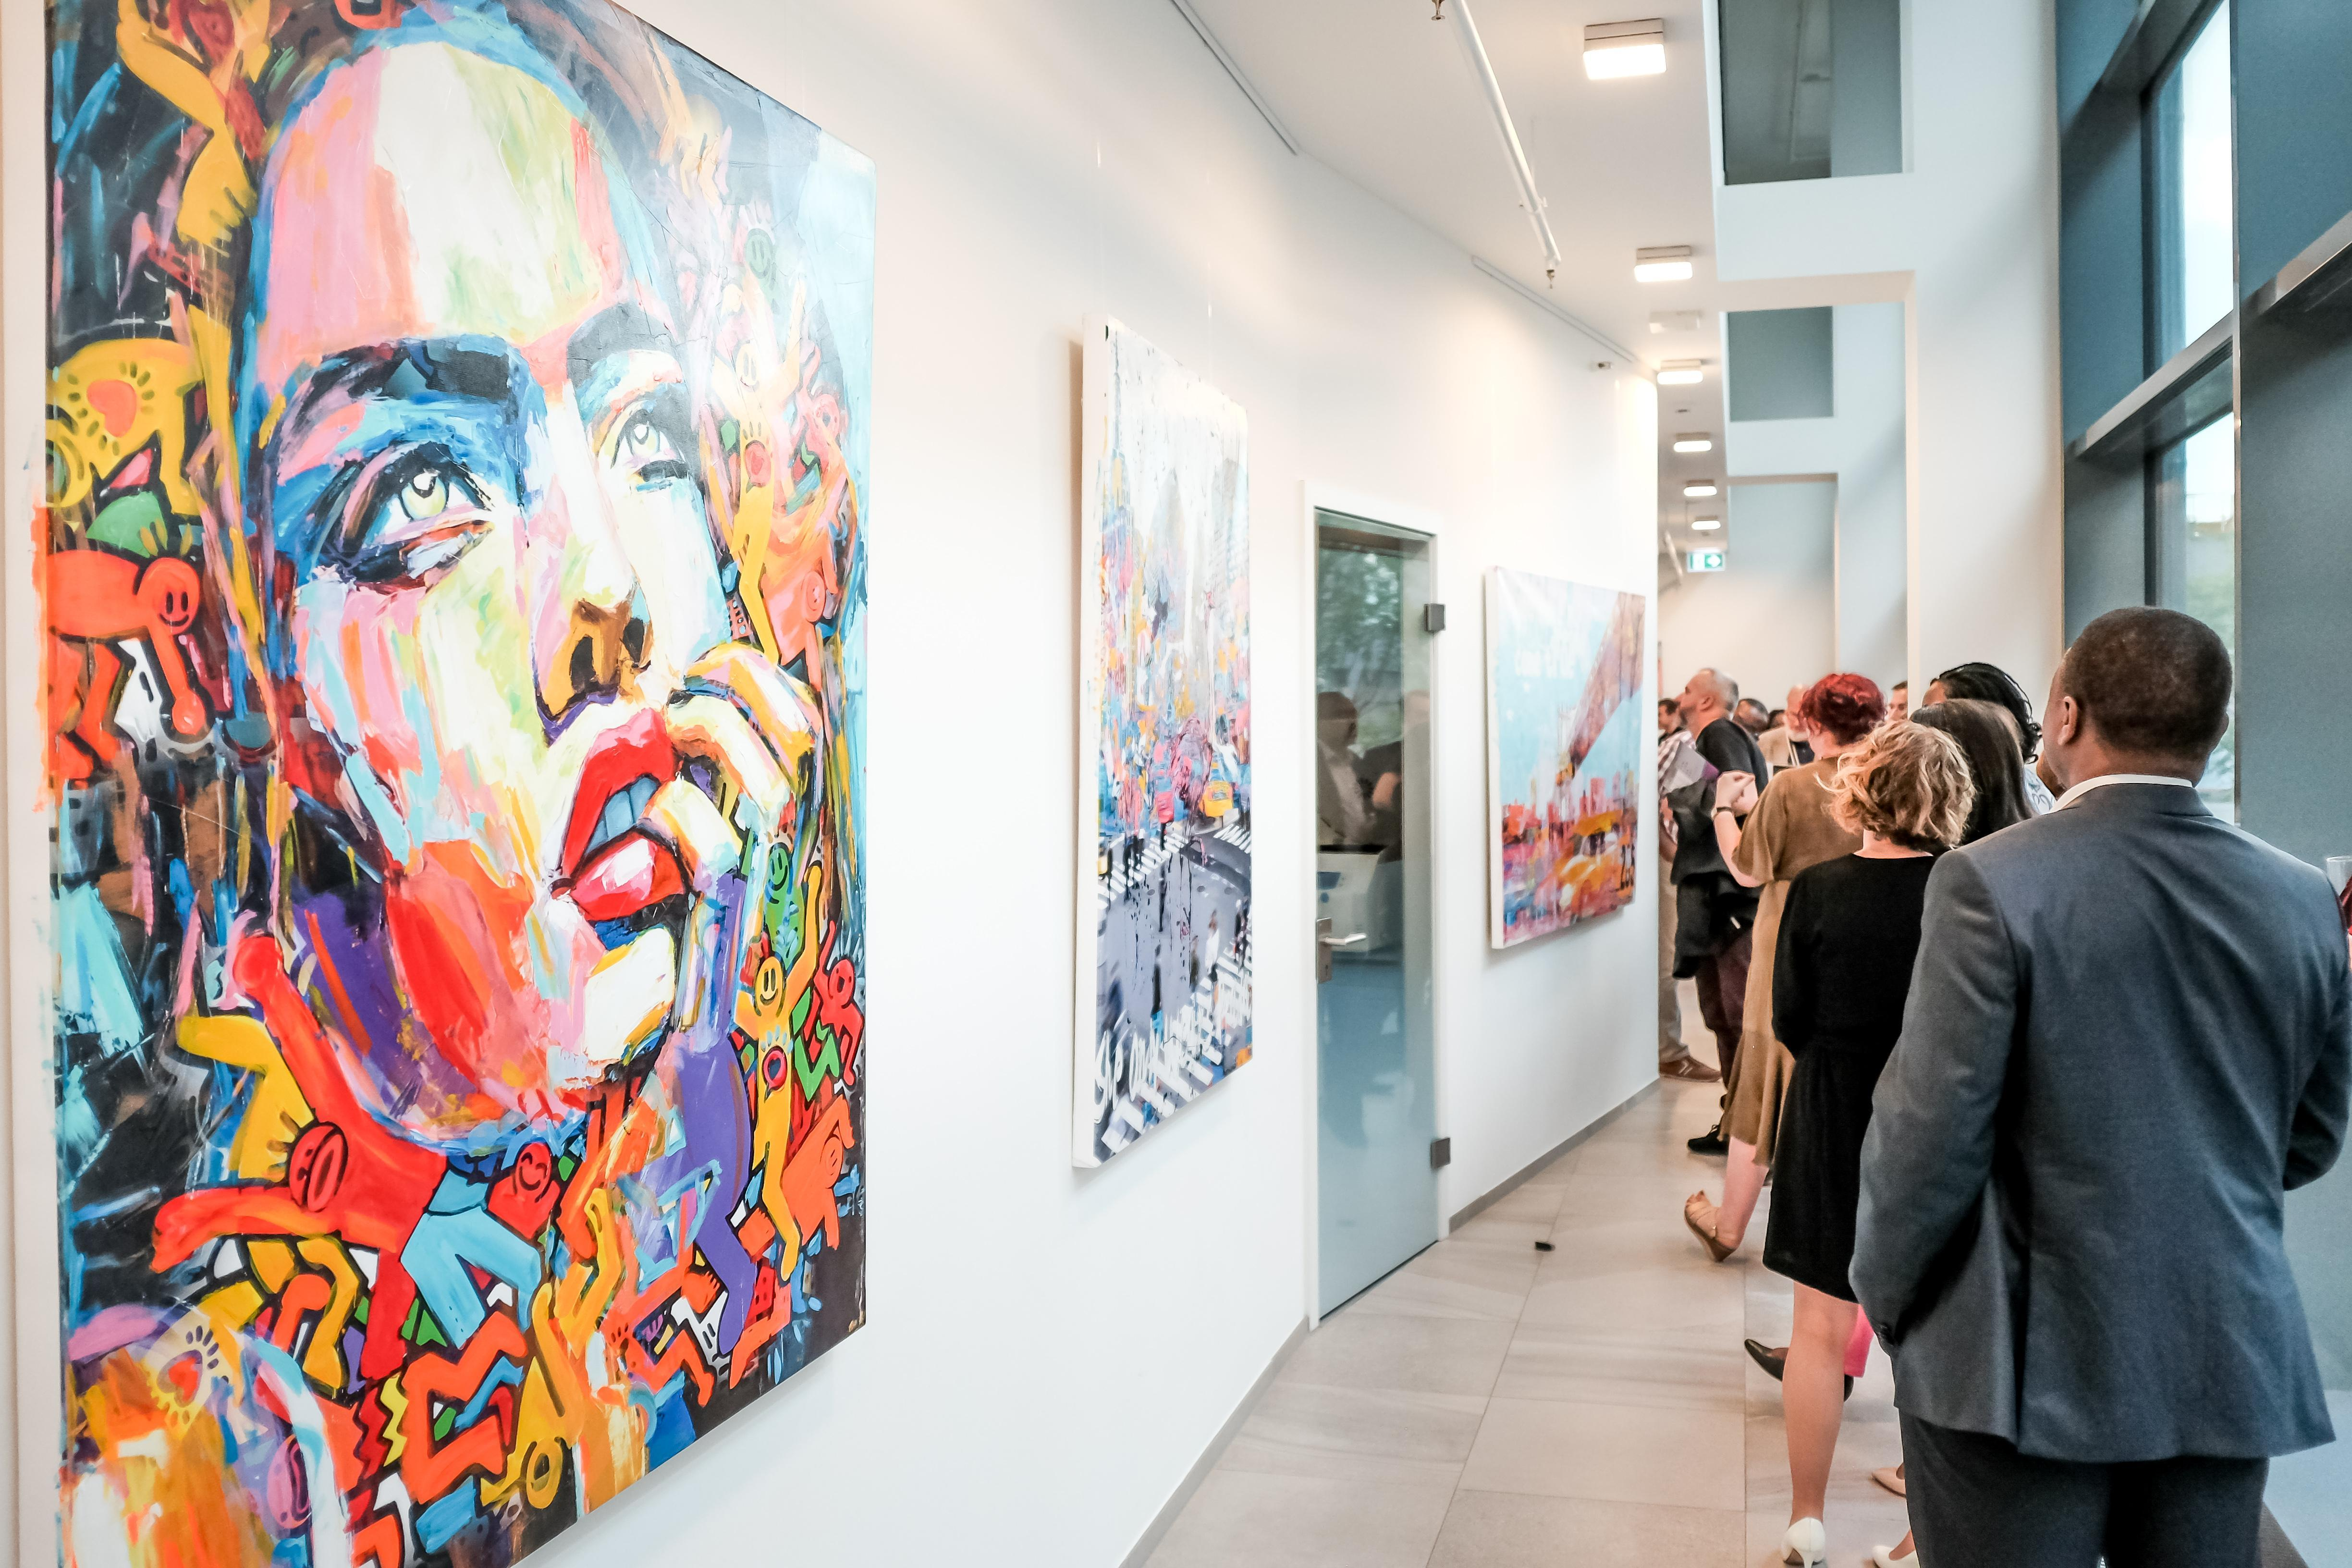 Exposition Art Galerie Luxembourg - Exhibition Art Gallery Luxembourg Photo: Gianmarco Design